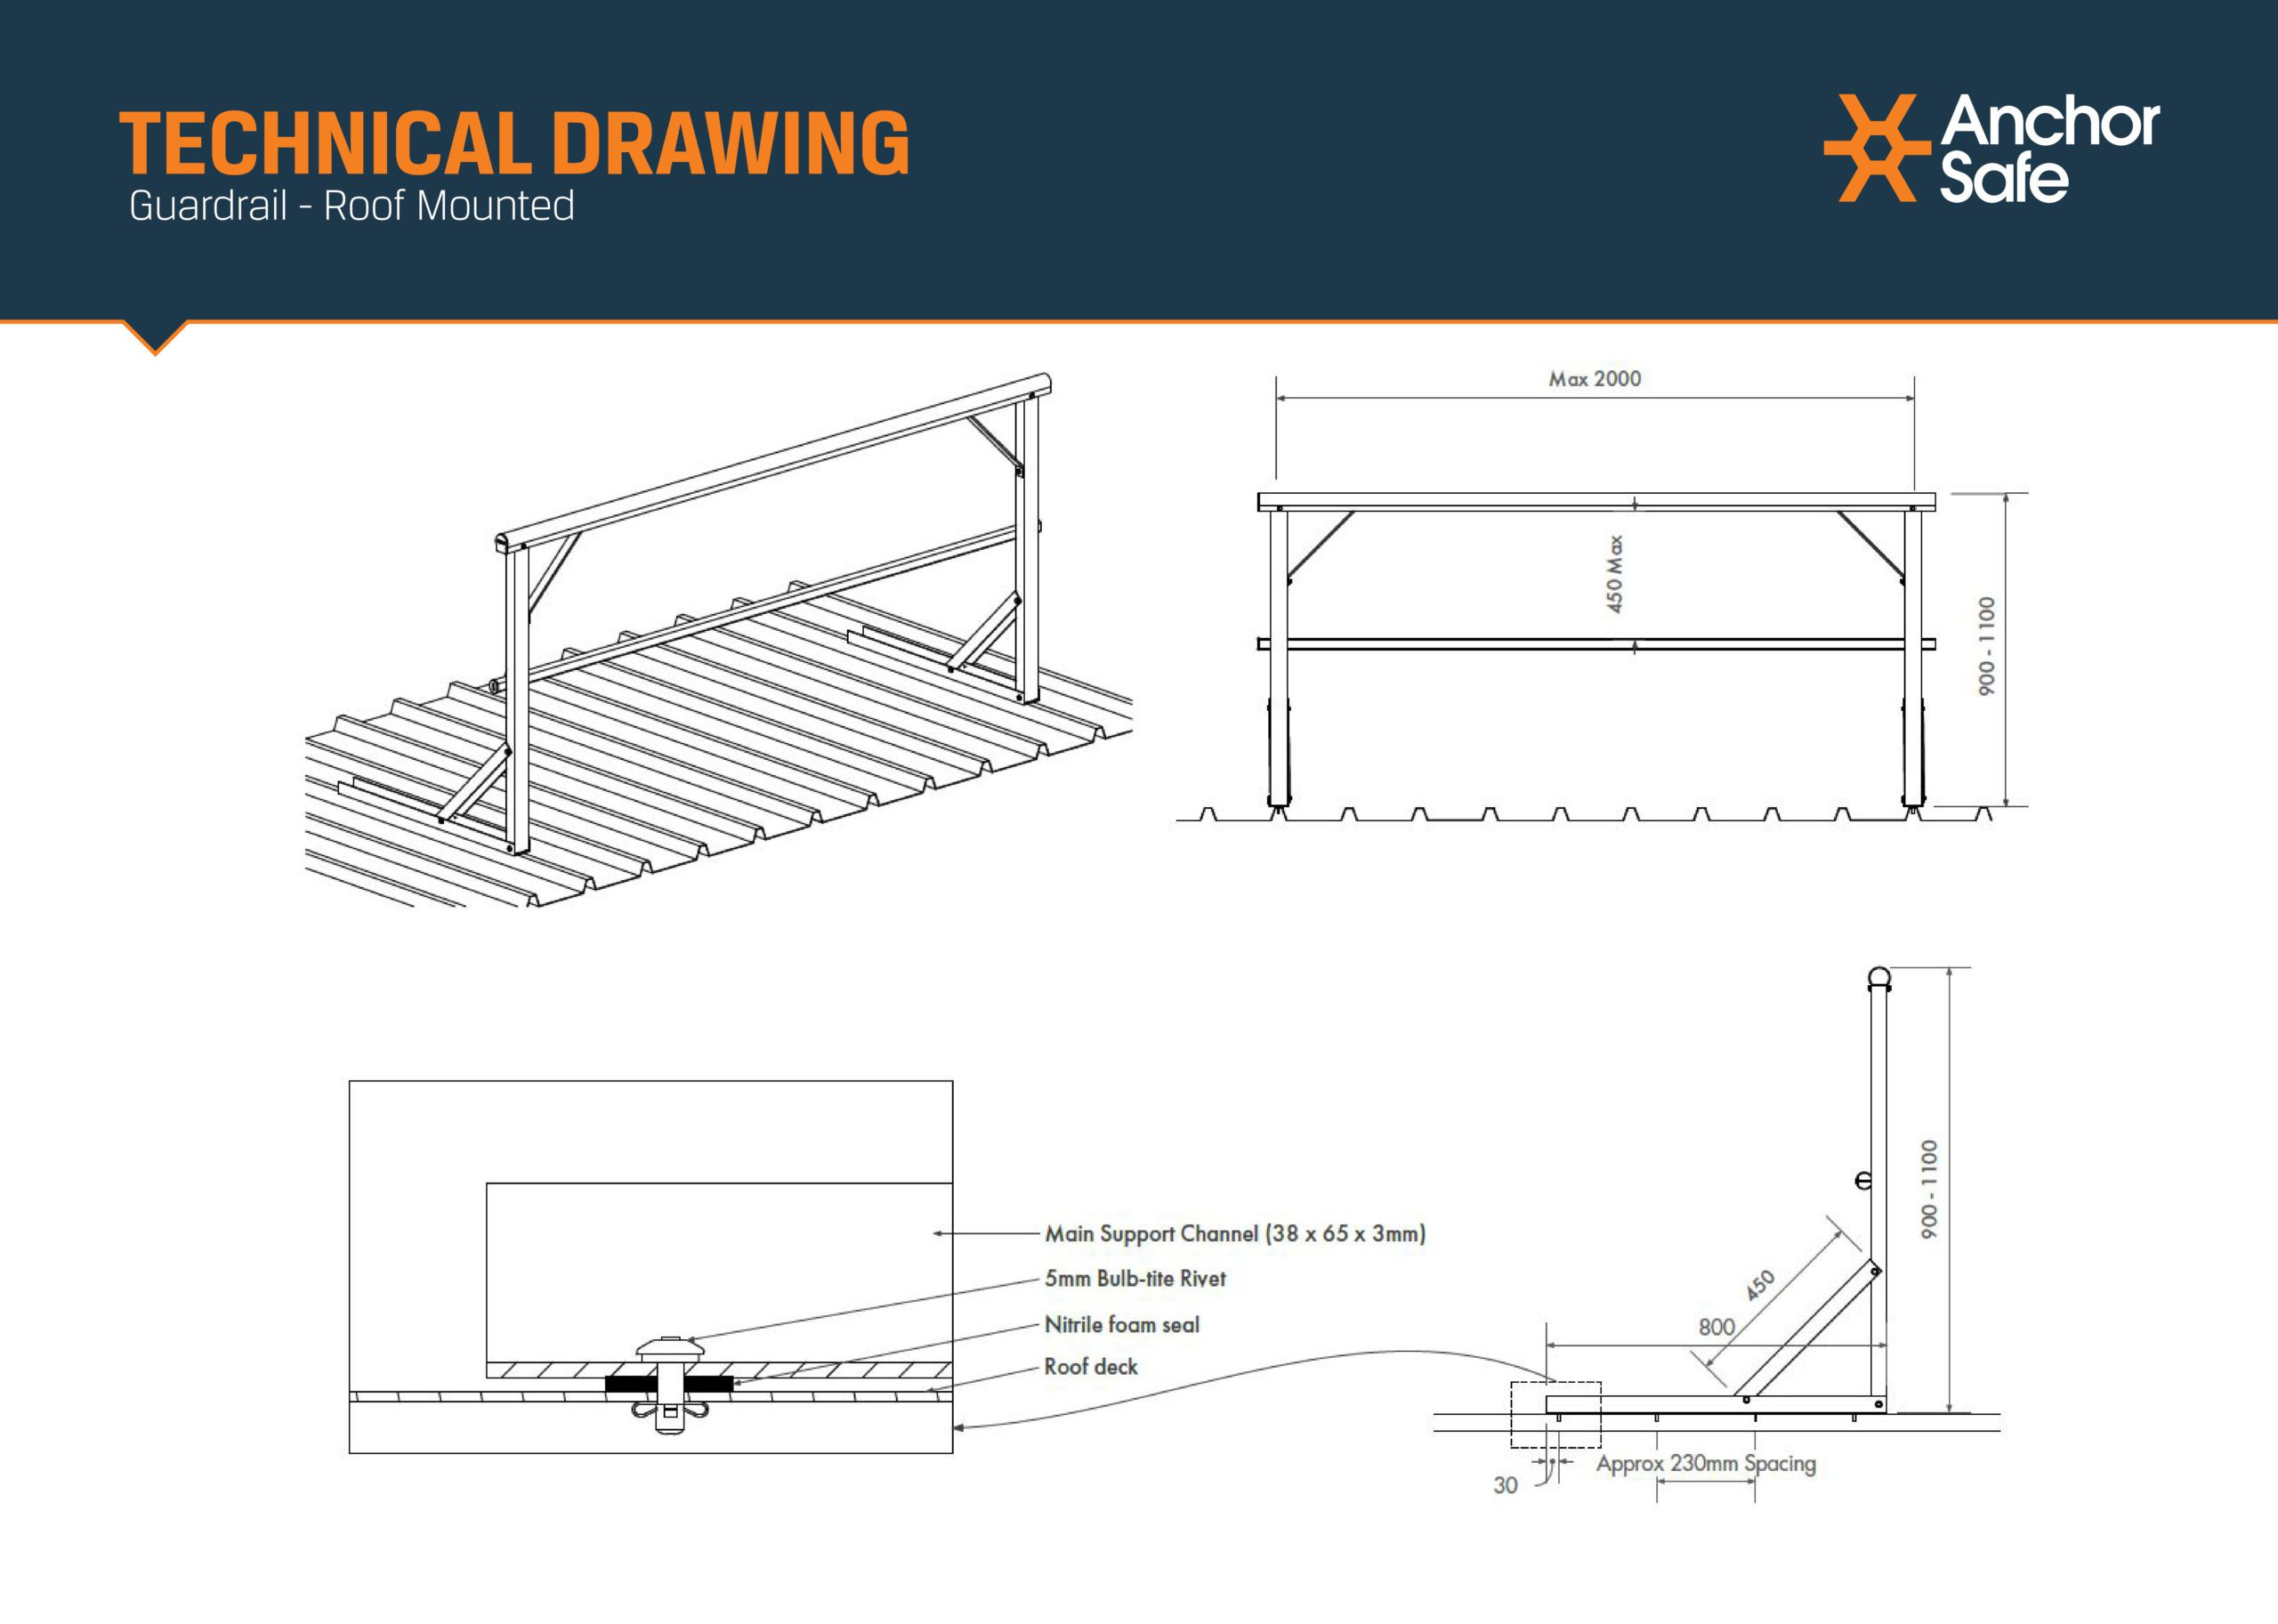 Detailed technical drawing showing sppecific measurements for Anchor Safe 100% compliant roof guardrail systems